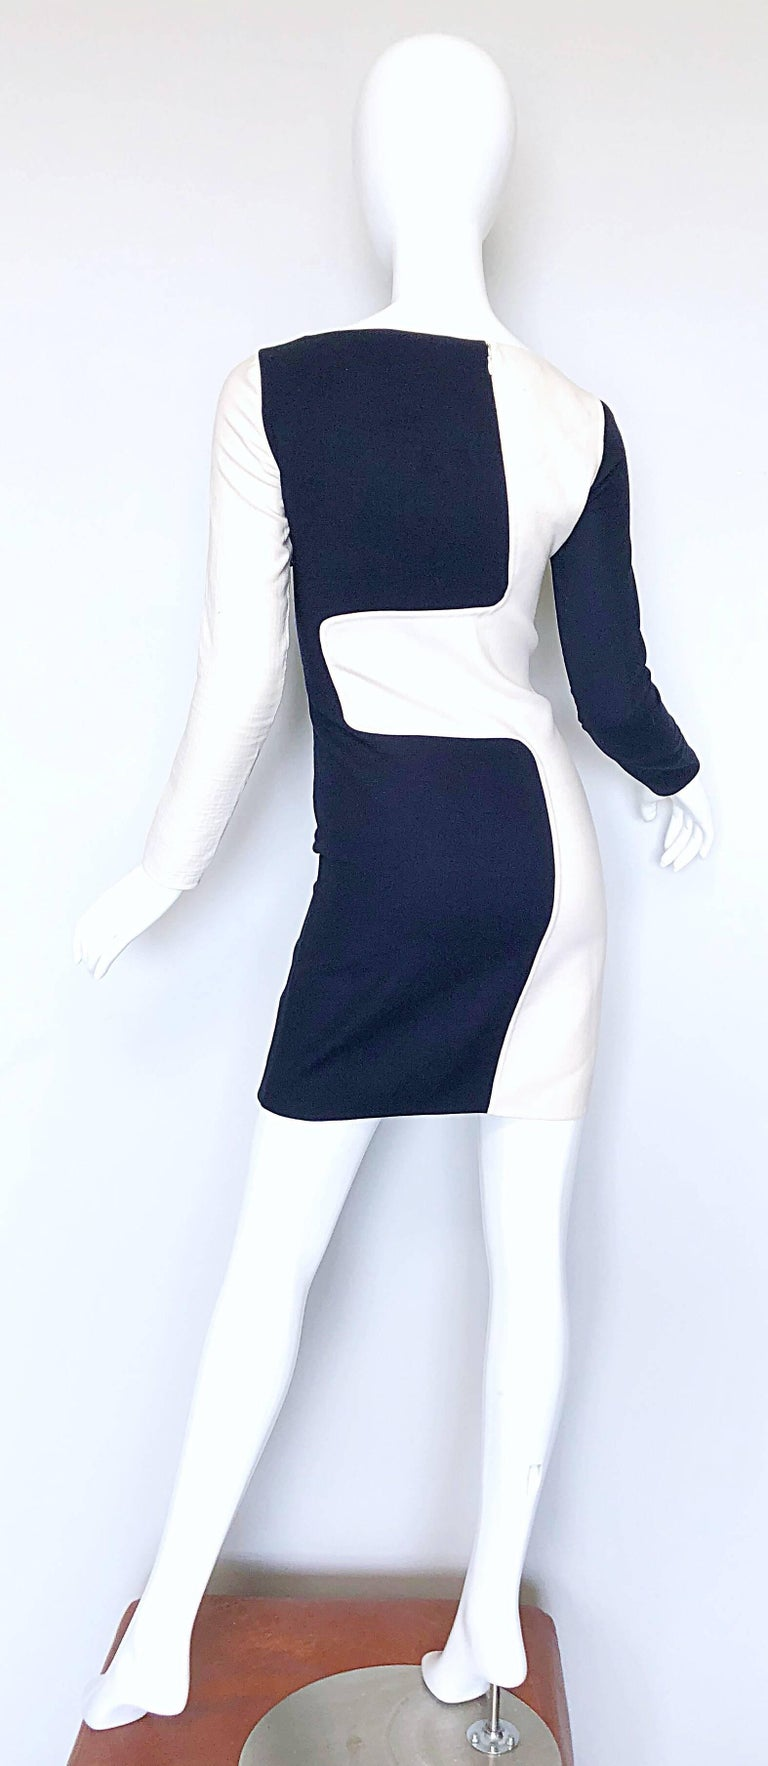 Women's Michael Kors Collection Spring 2013 Size 0 / 2 Navy Blue and White Puzzle Dress For Sale